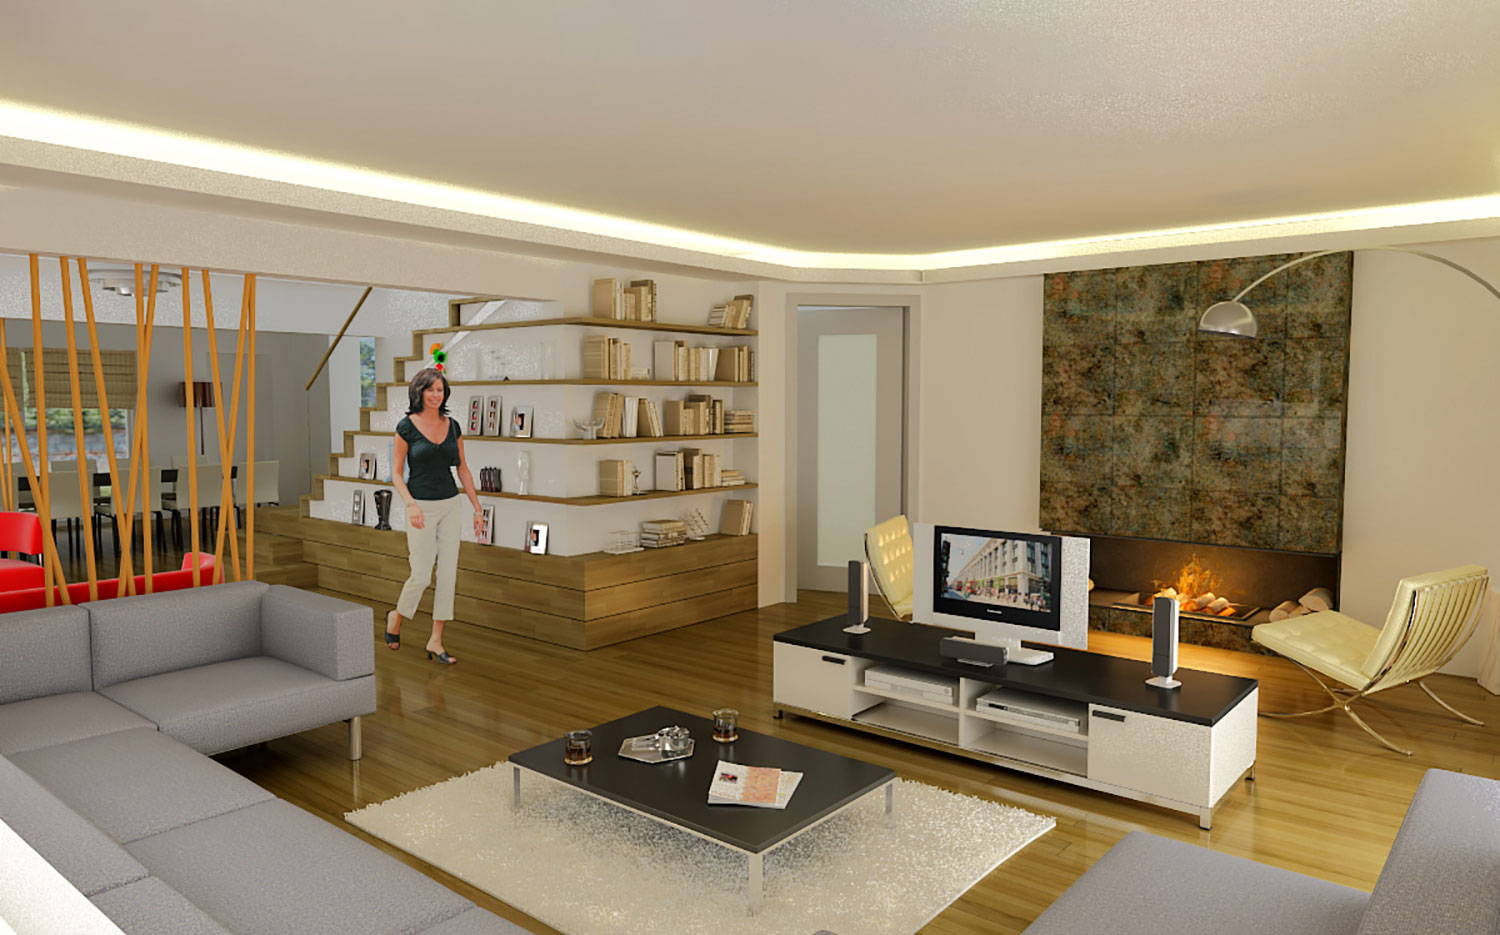 house-interior-design-urla-house-01